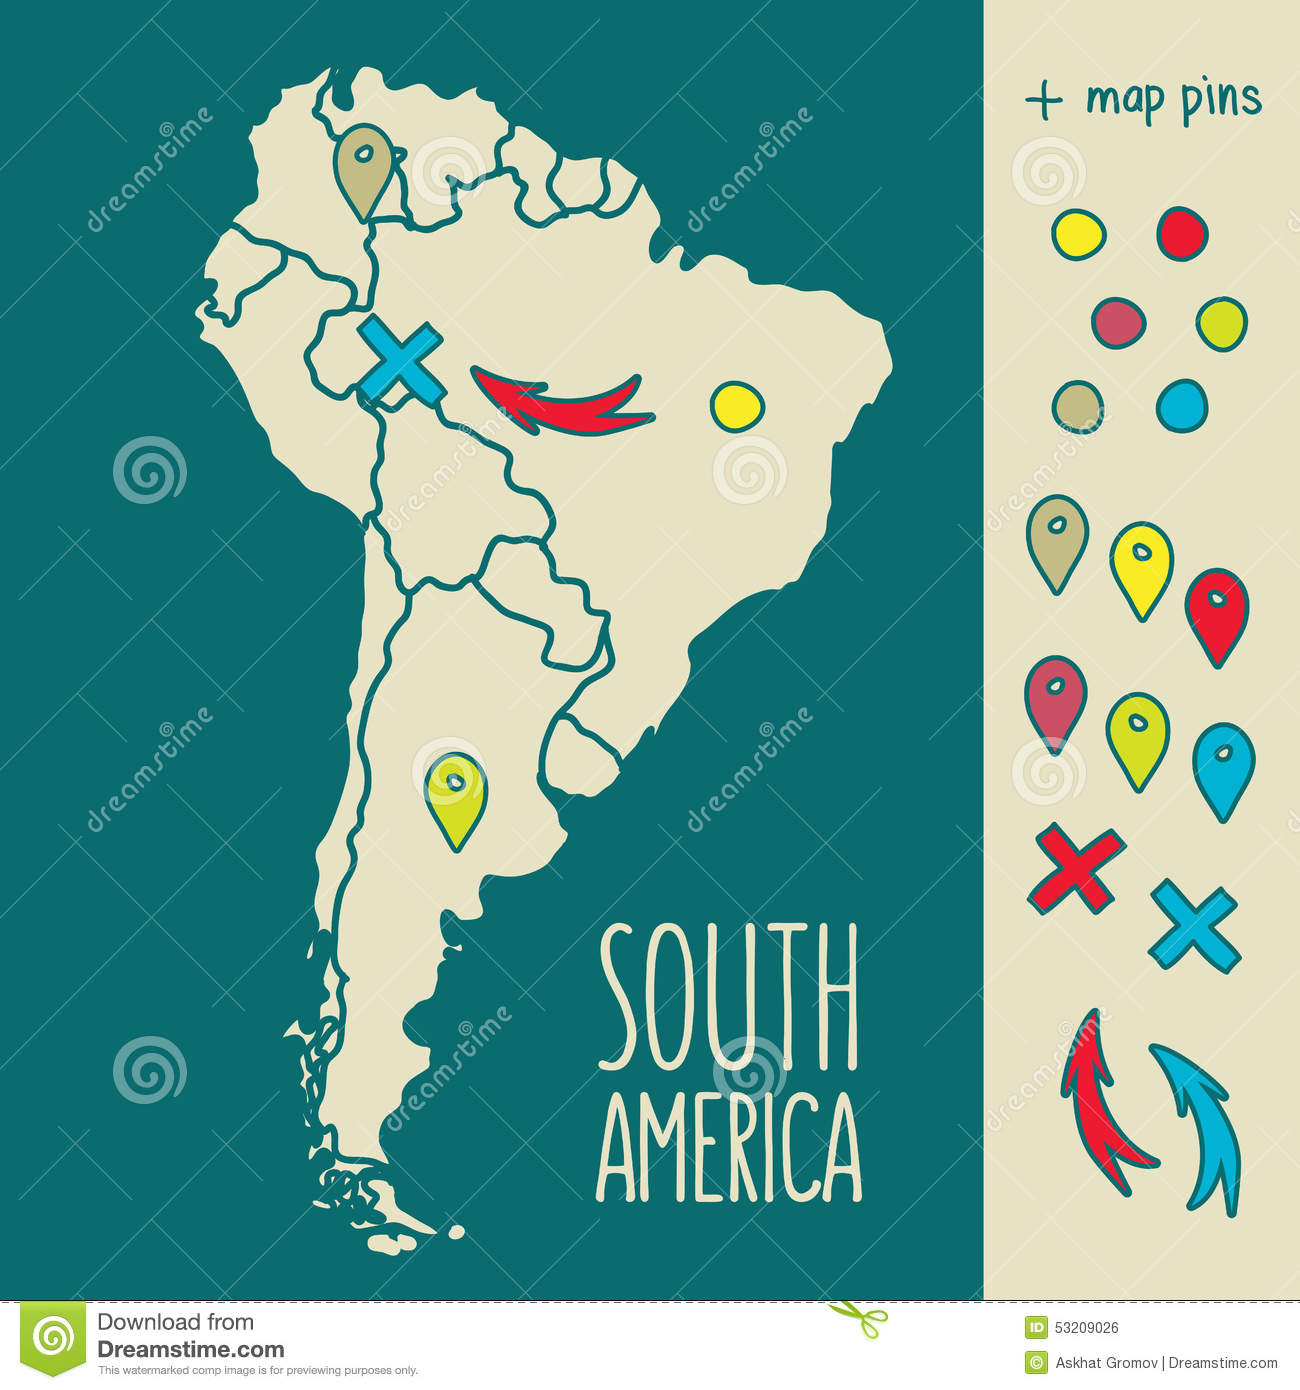 Vintage Hand Drawn South America Travel Map With Vector – South America Travel Map